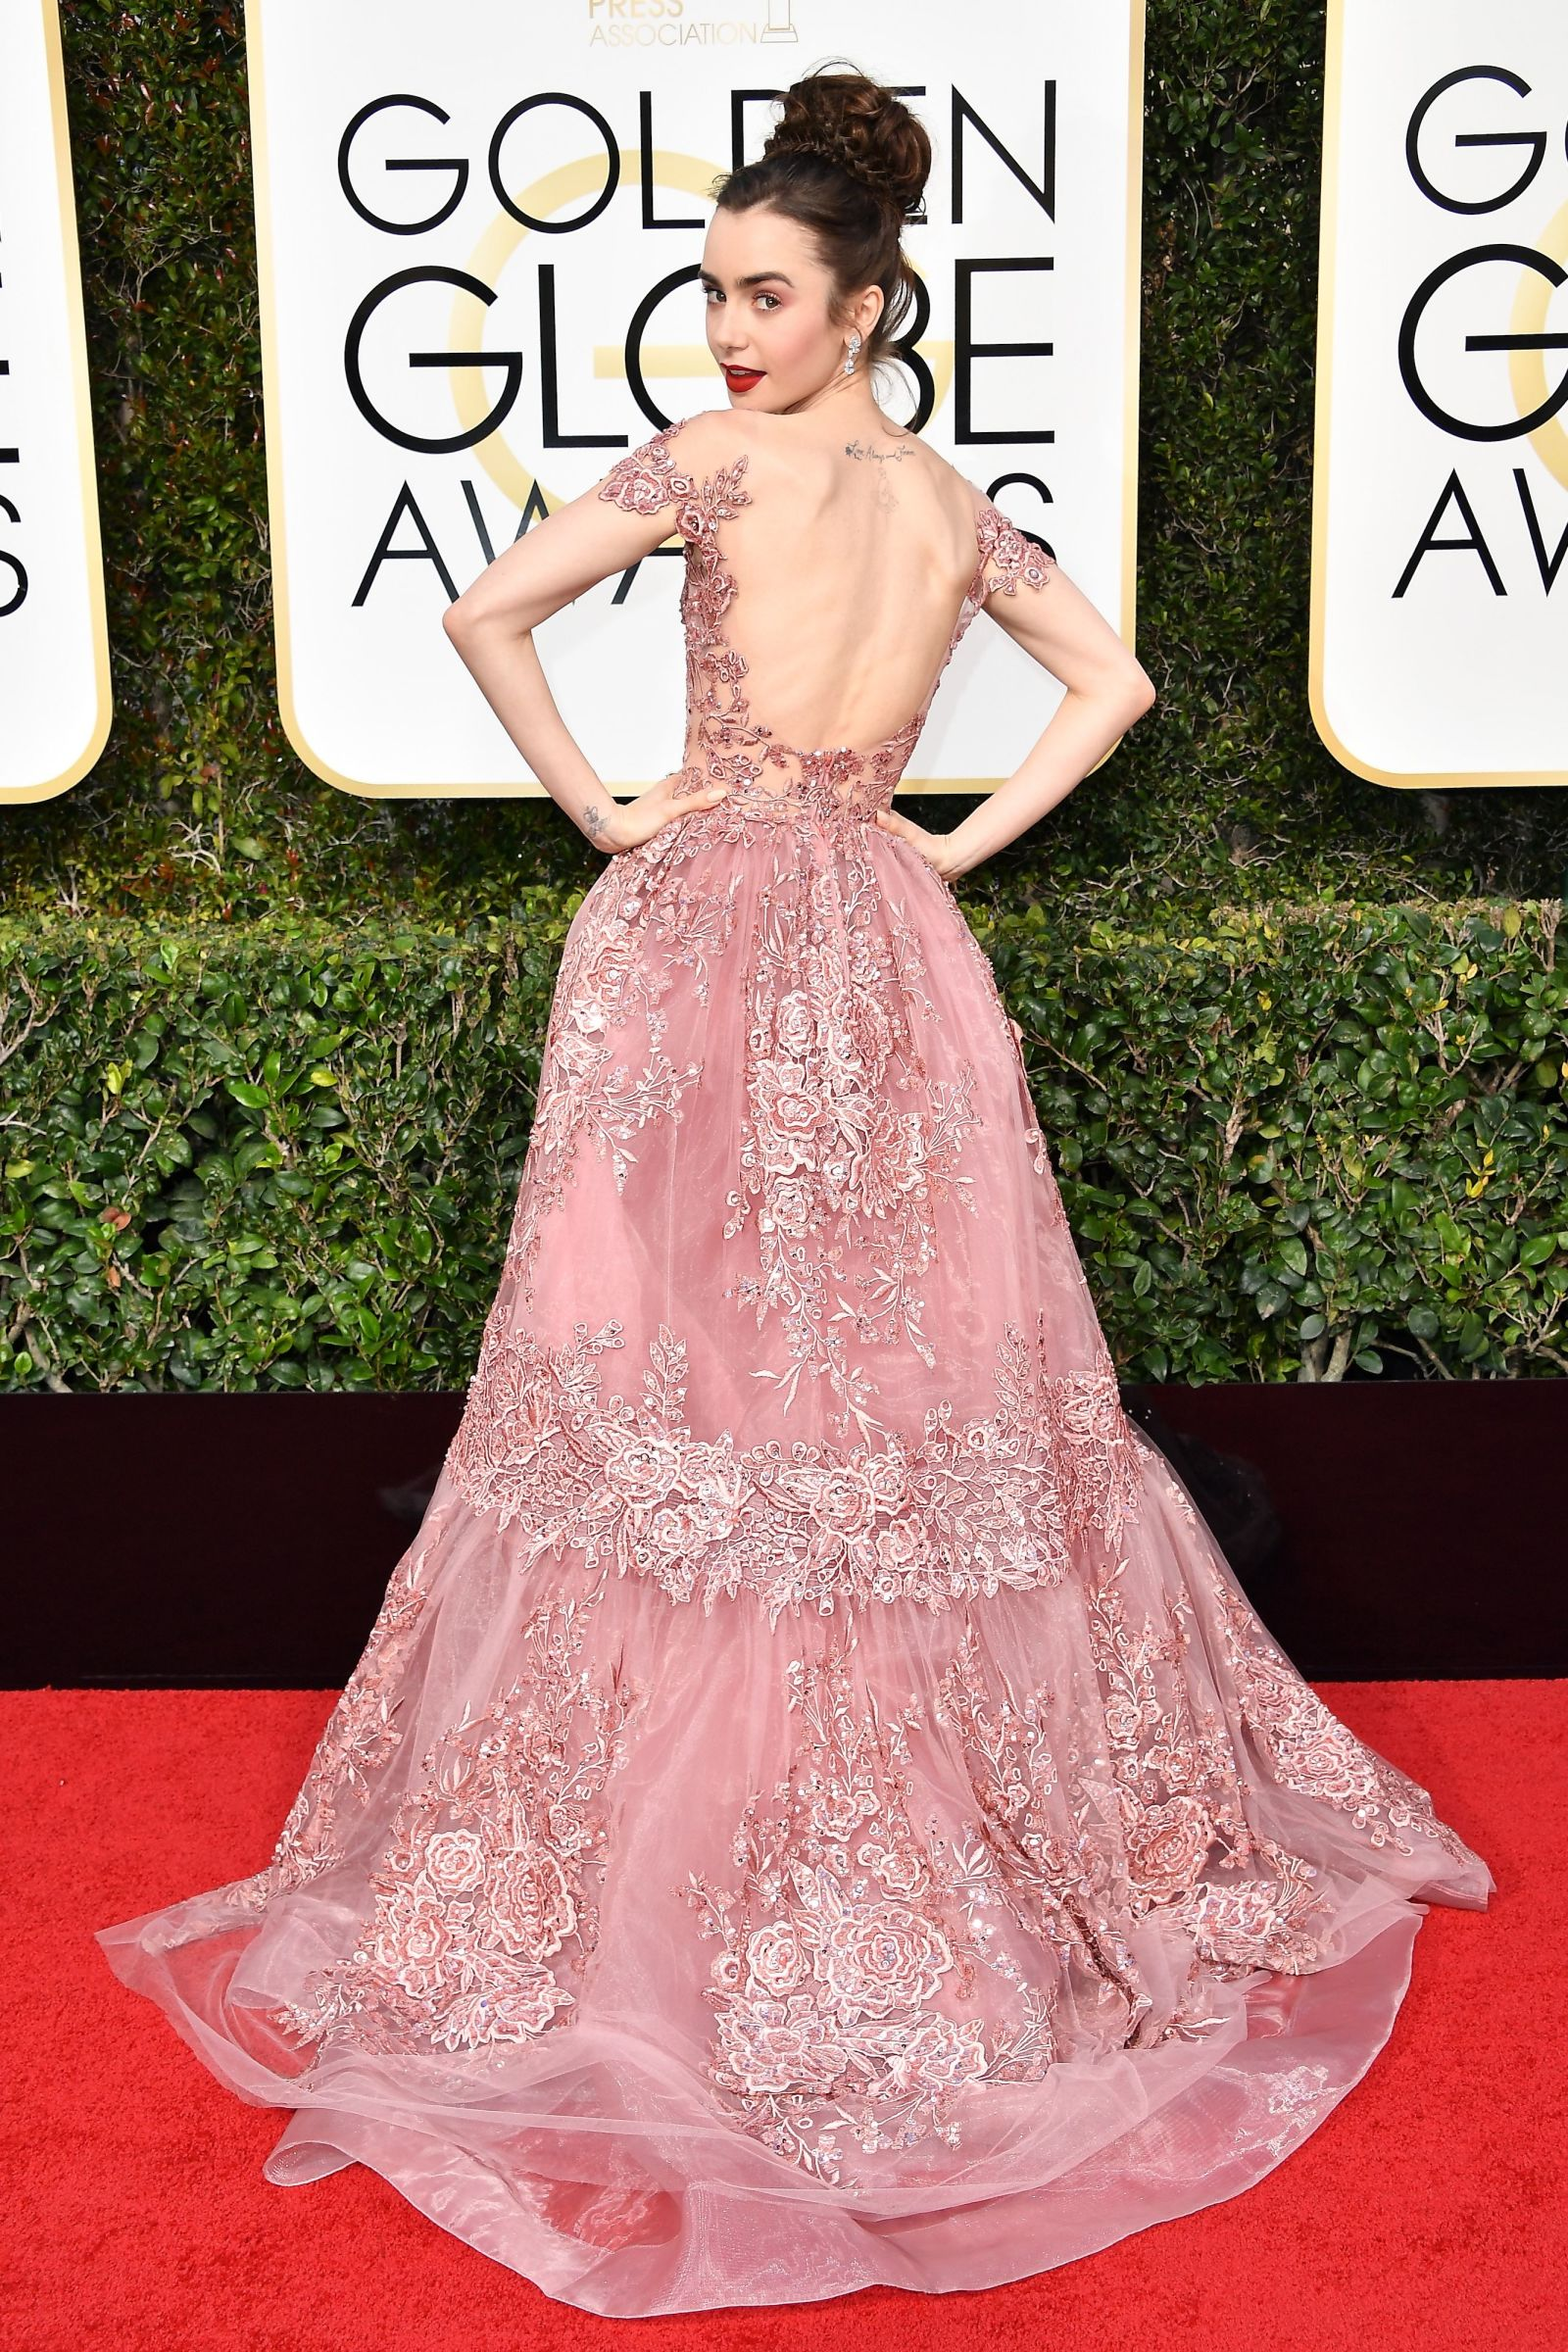 Elodie-Blog-Golden-Globes-2017_photo-Lily